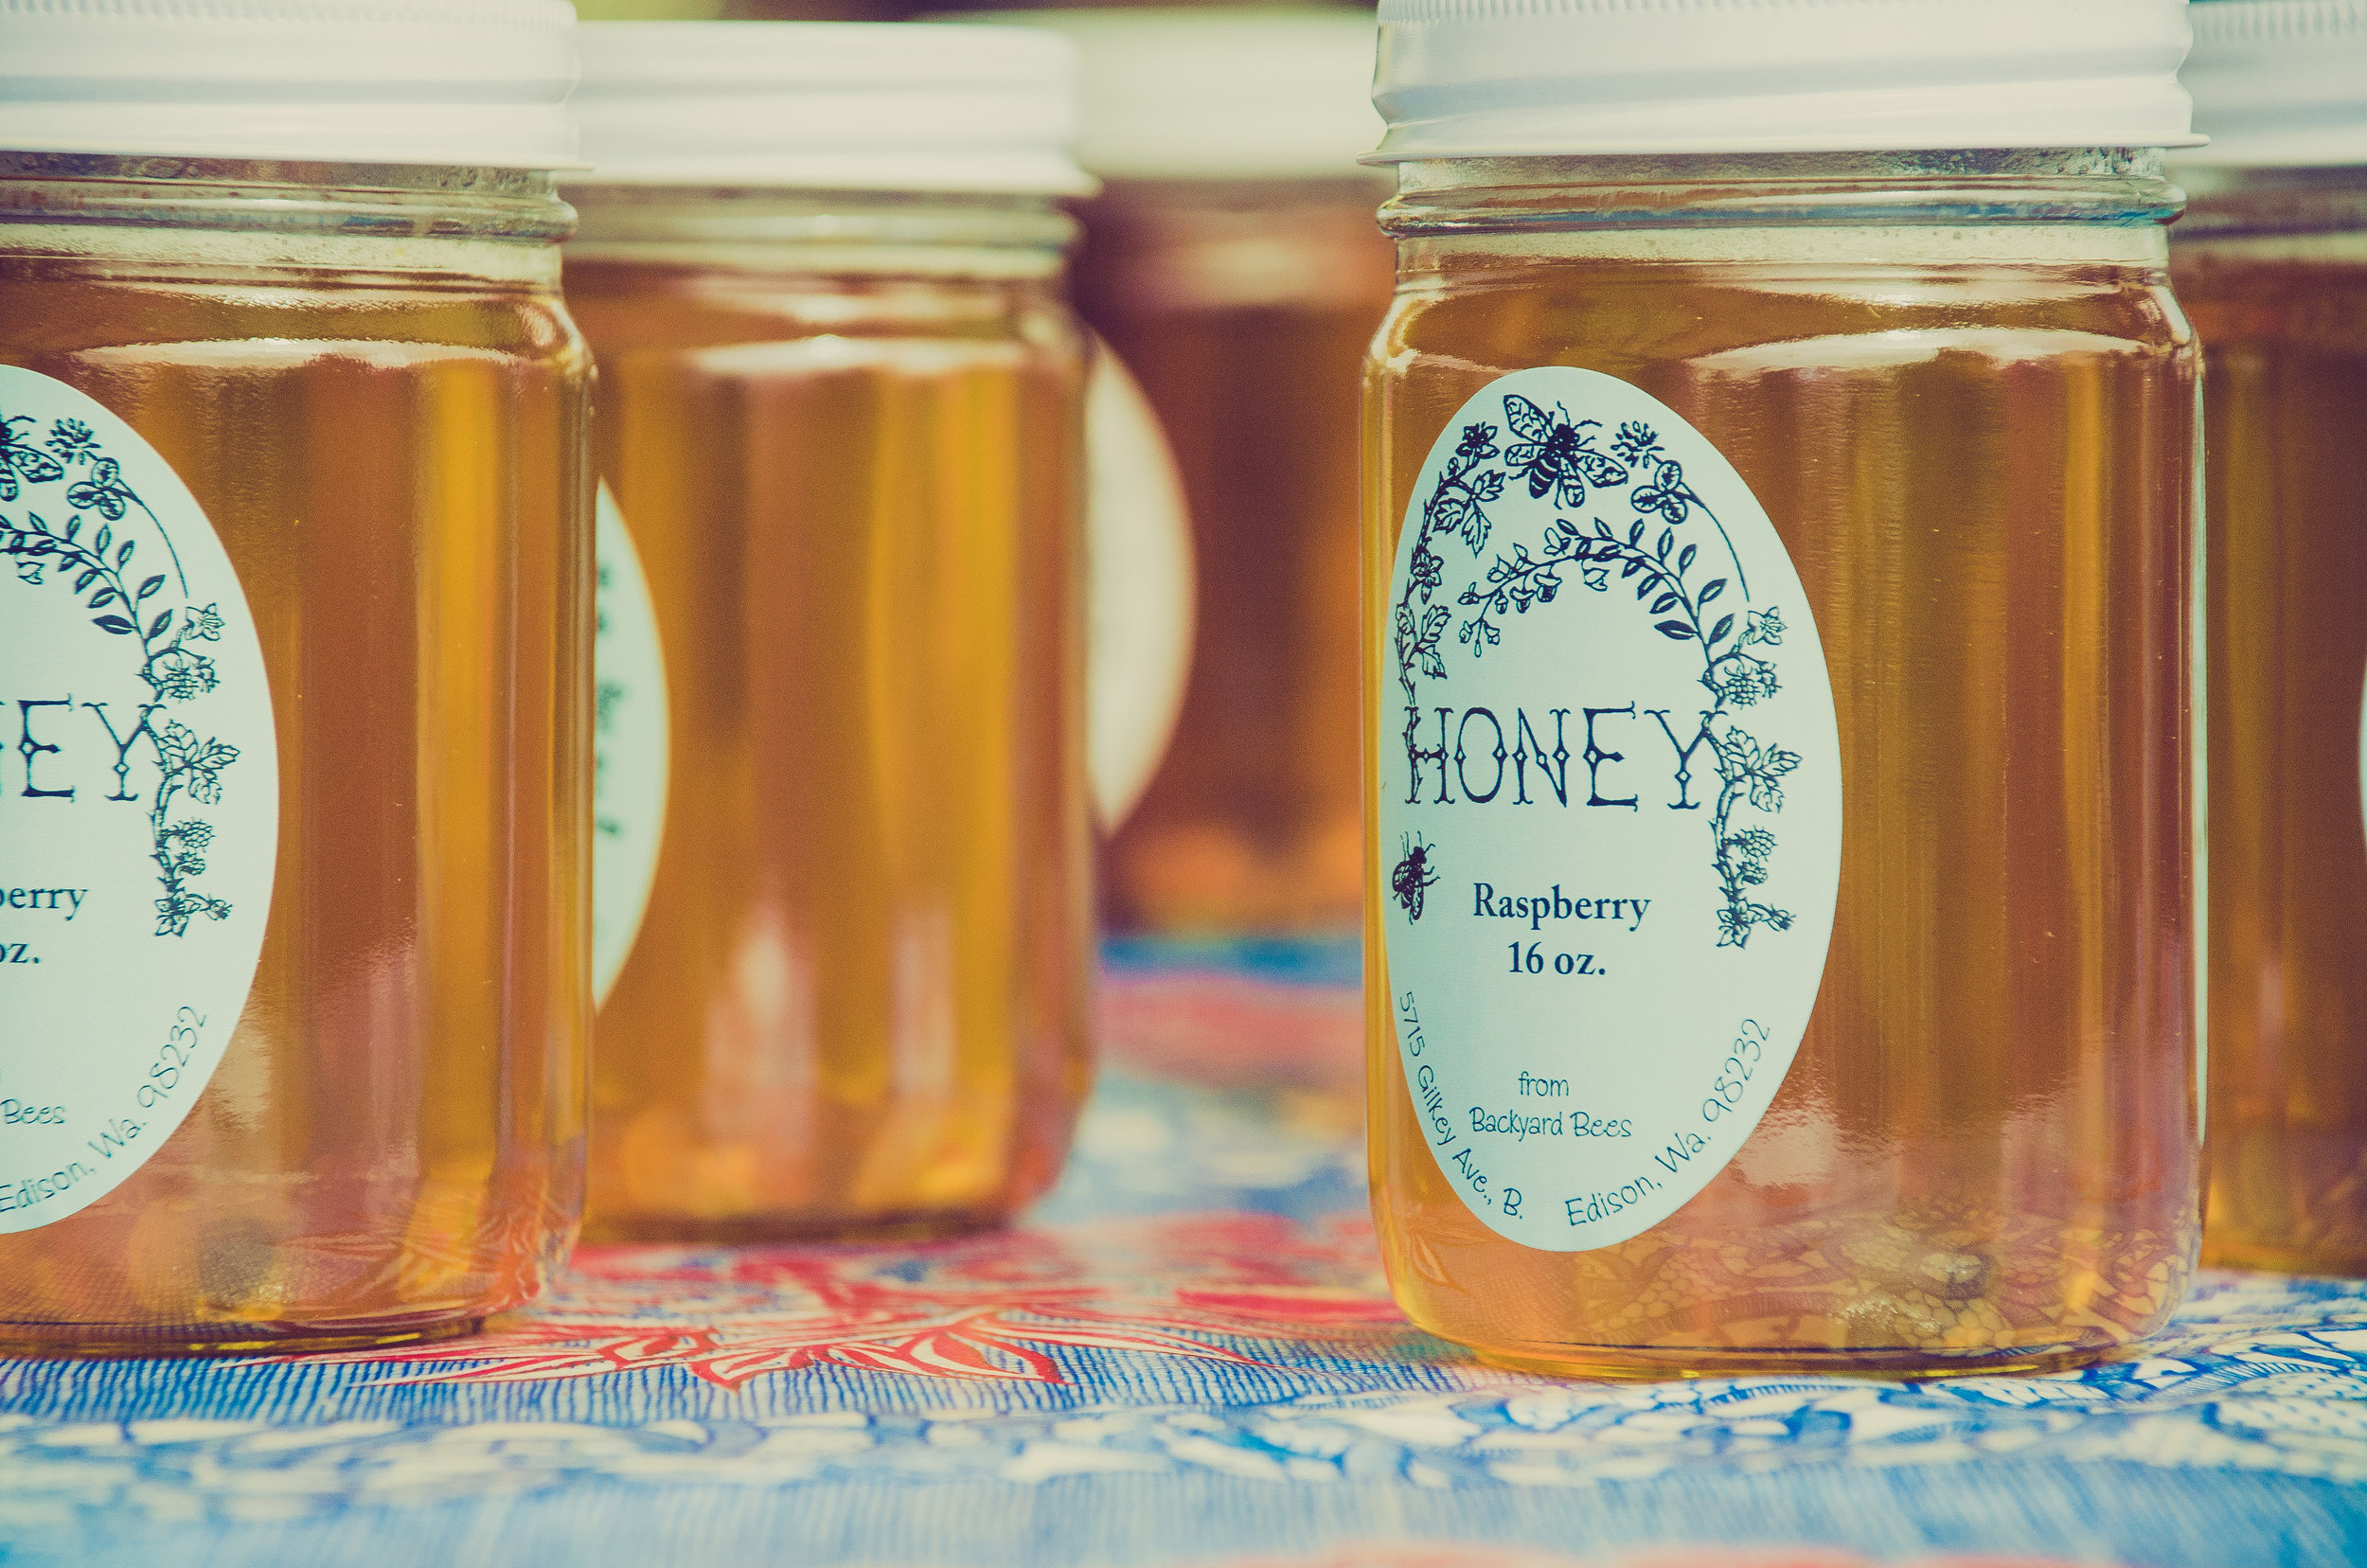 HONESTY BOXES - Look out for delicious homemade produce, sold by food-loving locals on their doorsteps. Think chunky jams made from allotment-grown fruit, freshly-baked cakes, summery cordials, fresh organic eggs and wildflower honey. It's country living at its best.